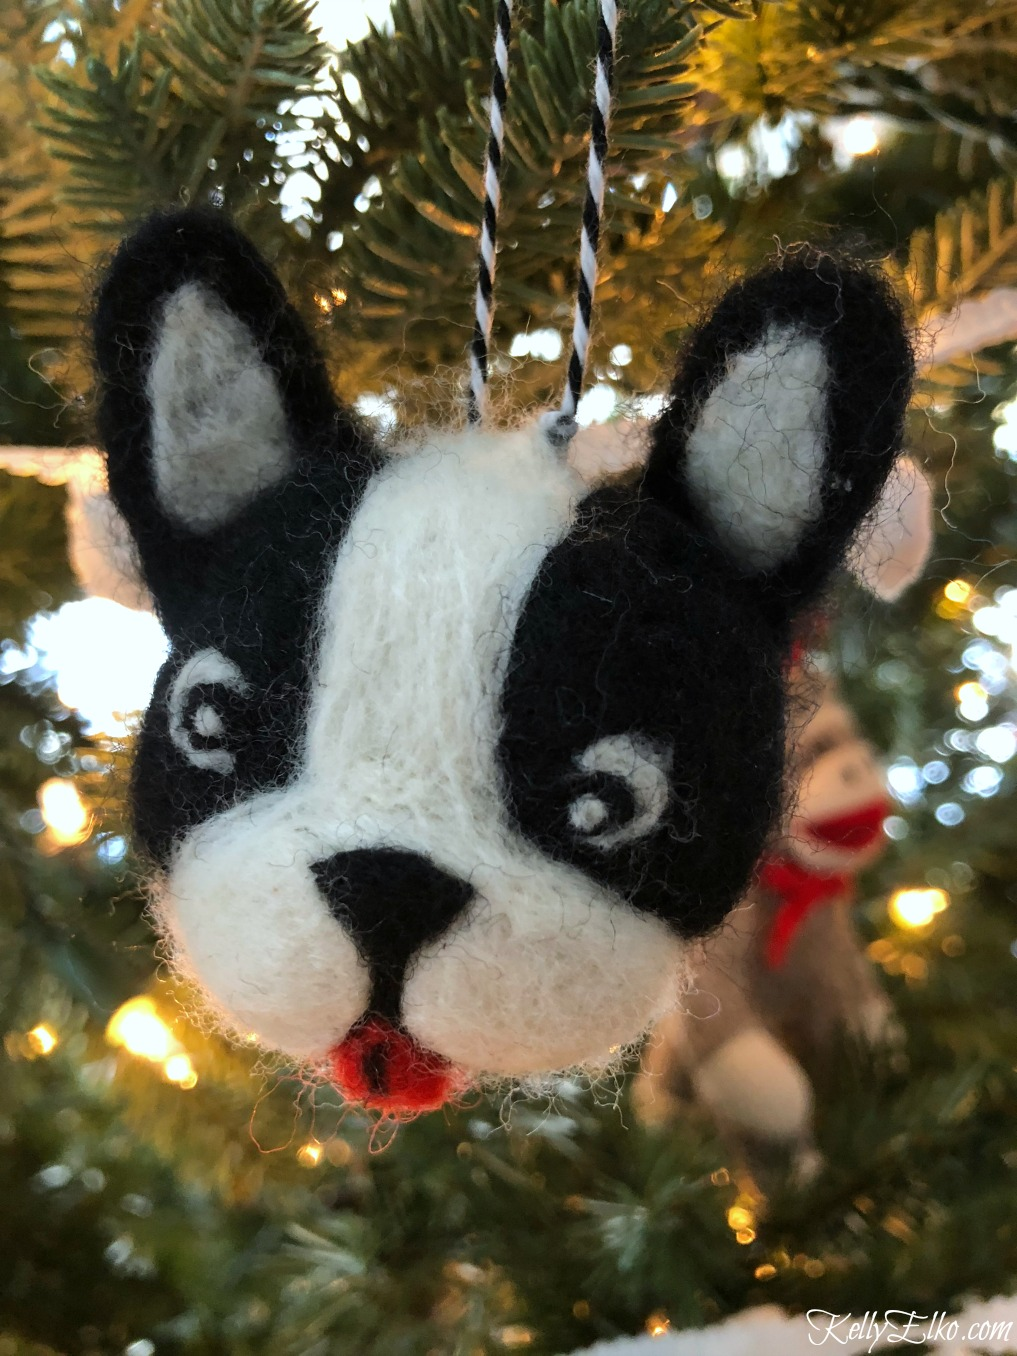 Boston Terrier Christmas ornament kellyelko.com